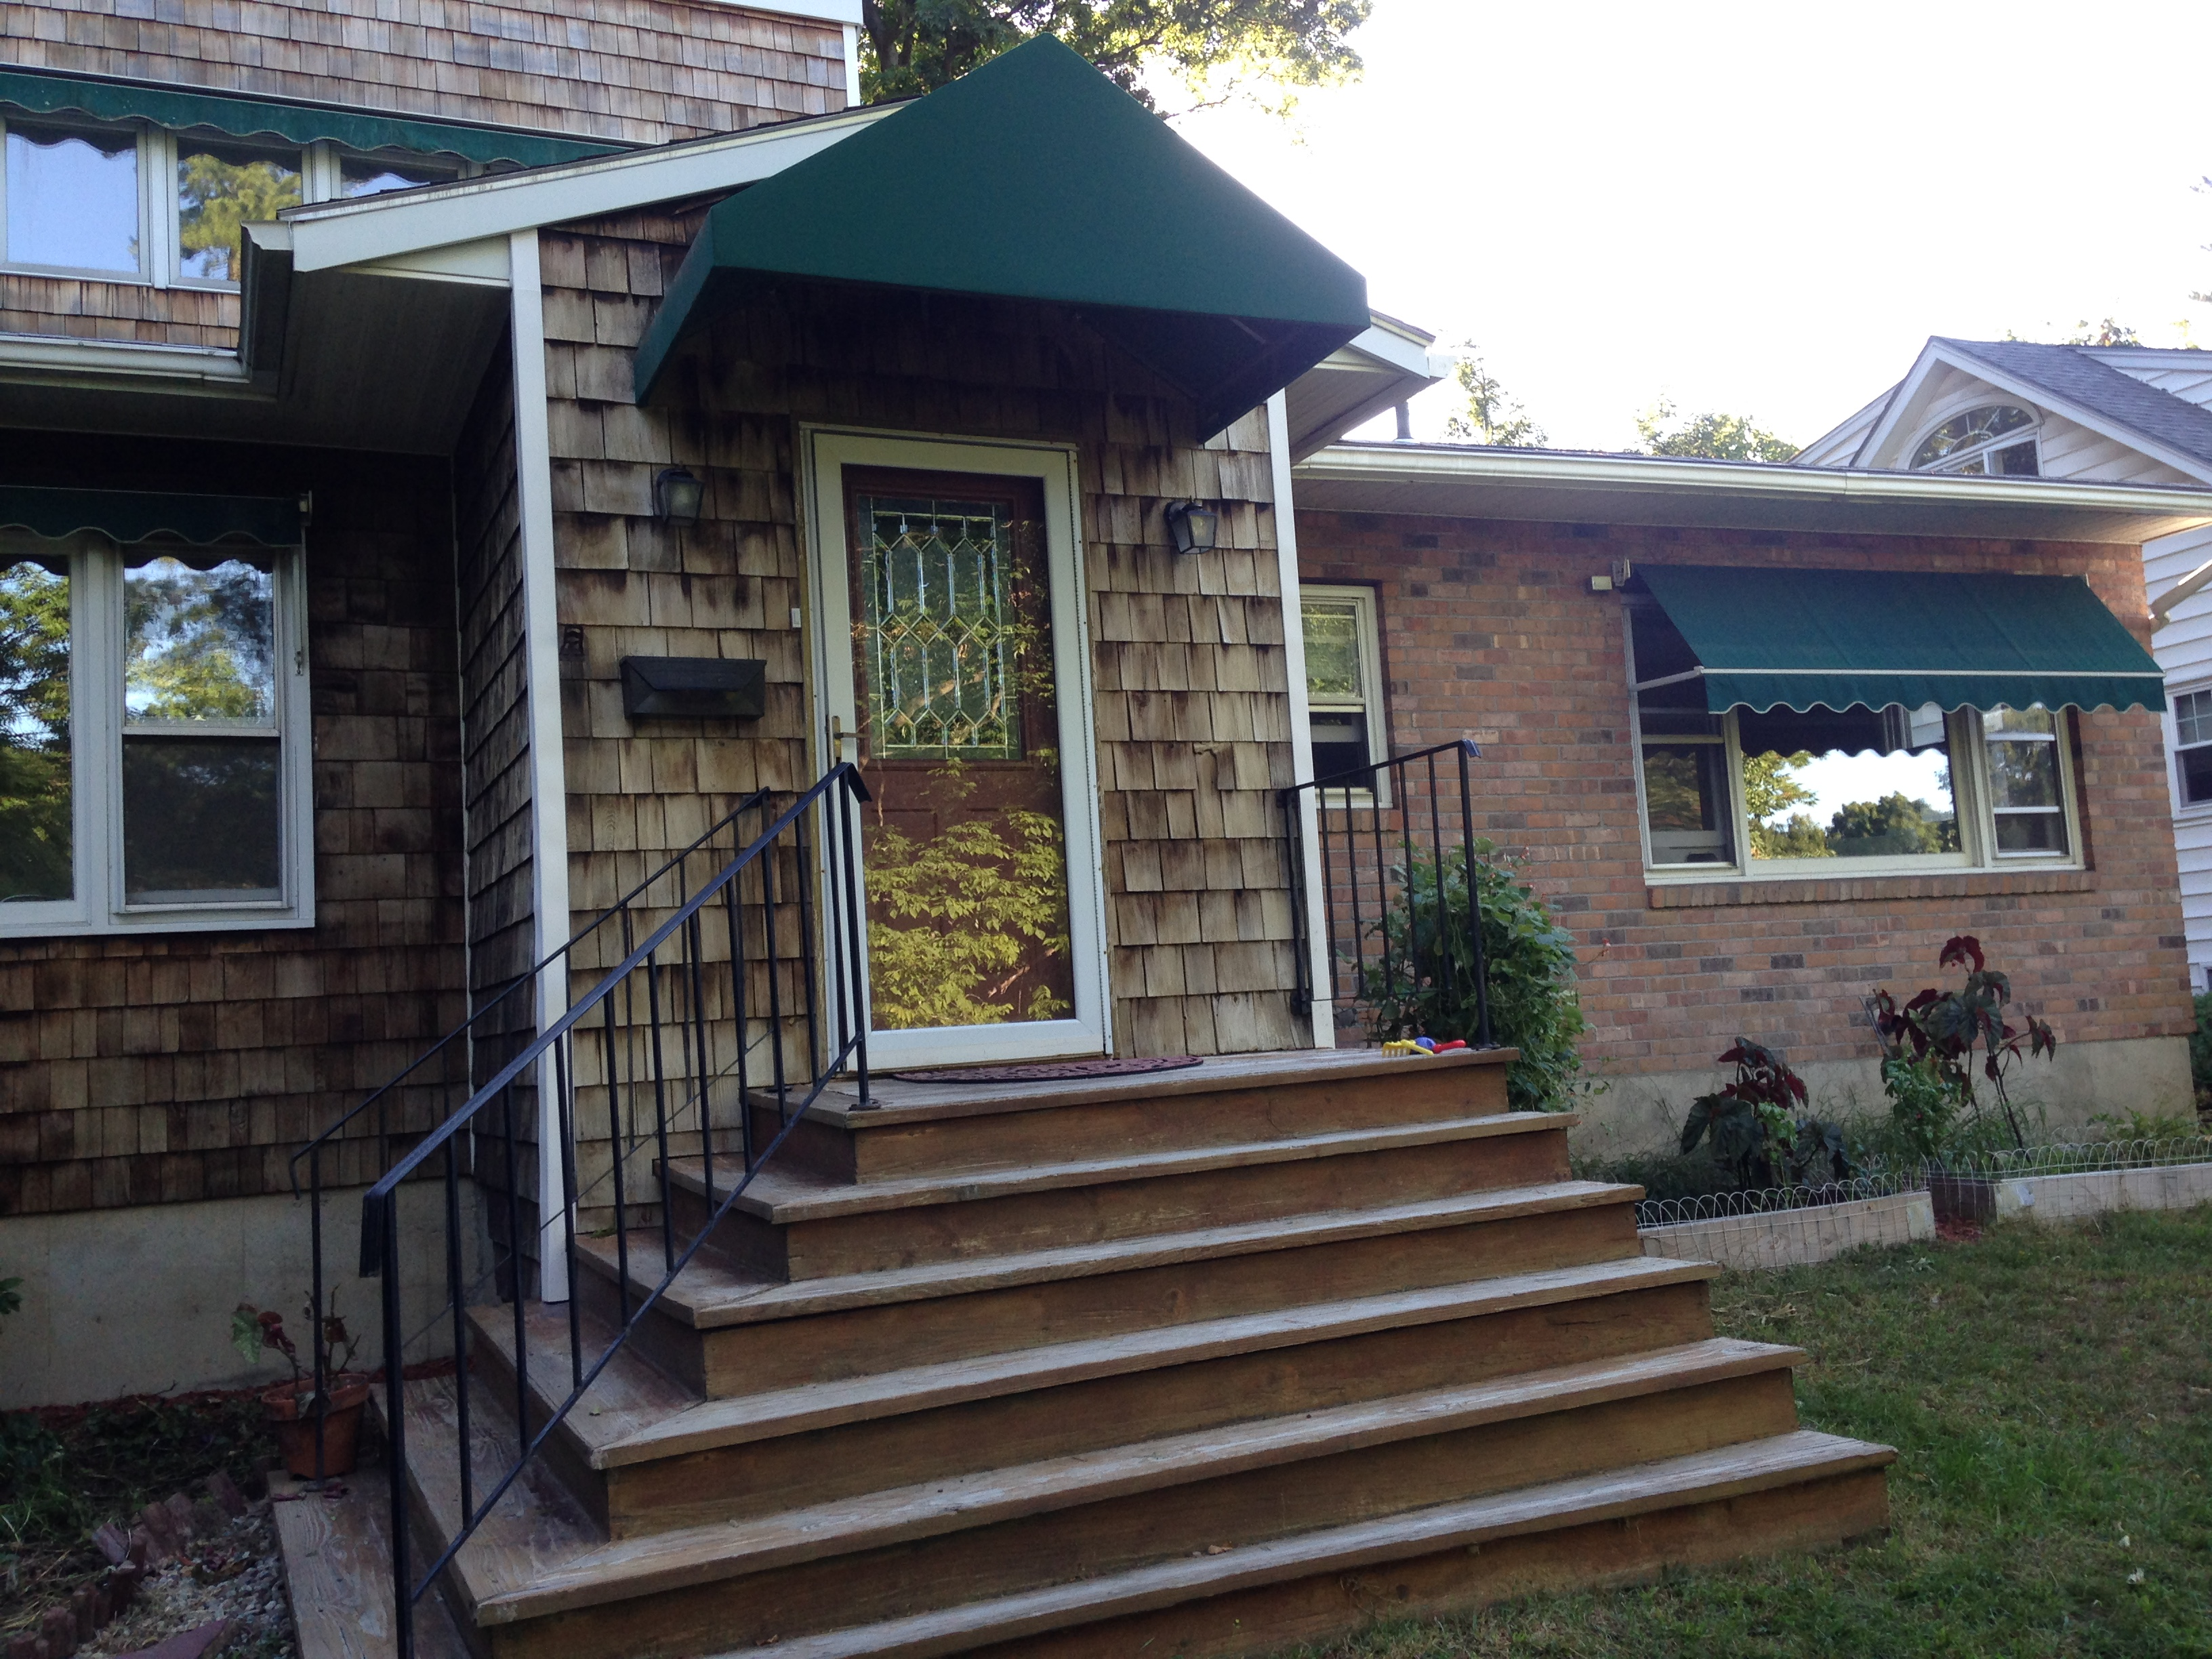 15 Before Front Steps To House Distinctive Landscaping